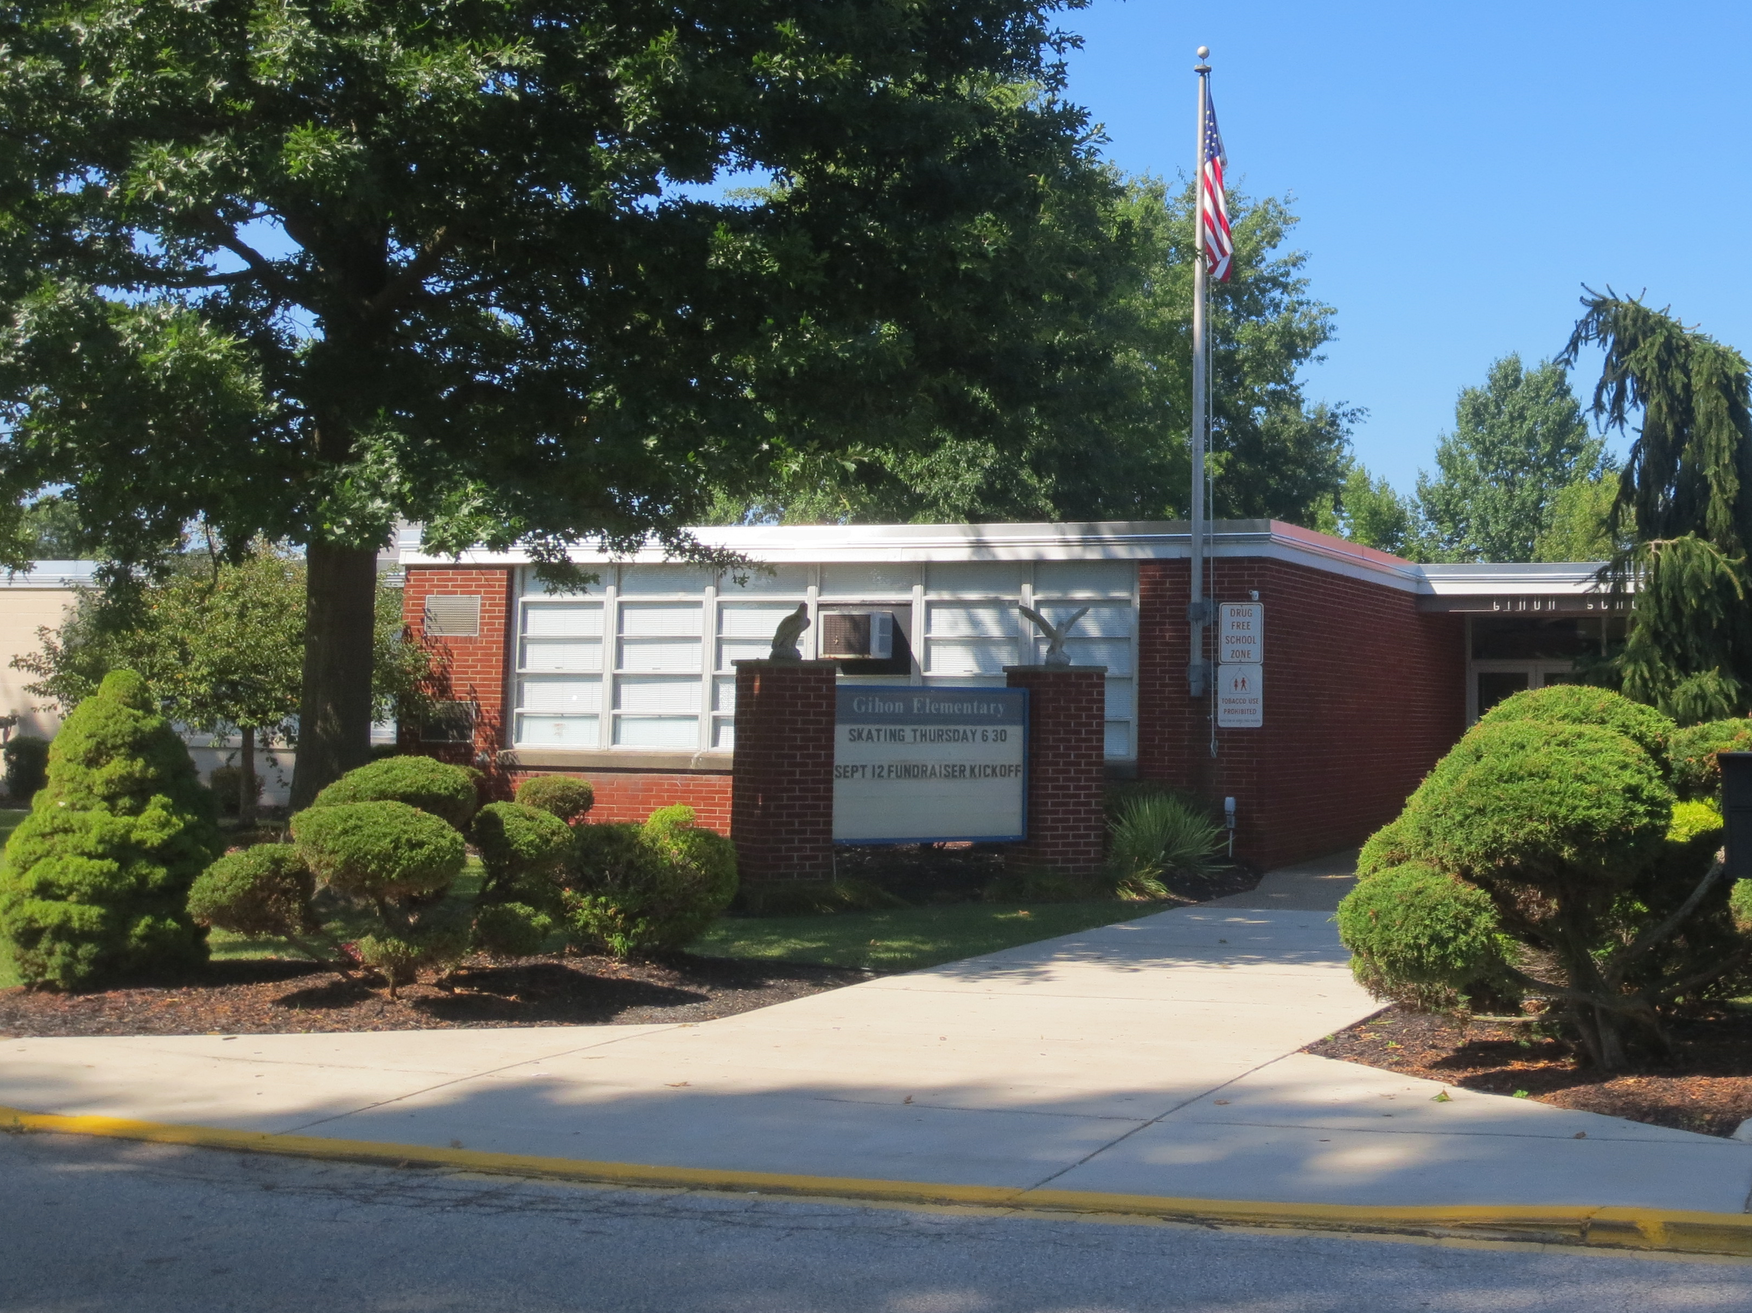 Picture of Gihon elementary